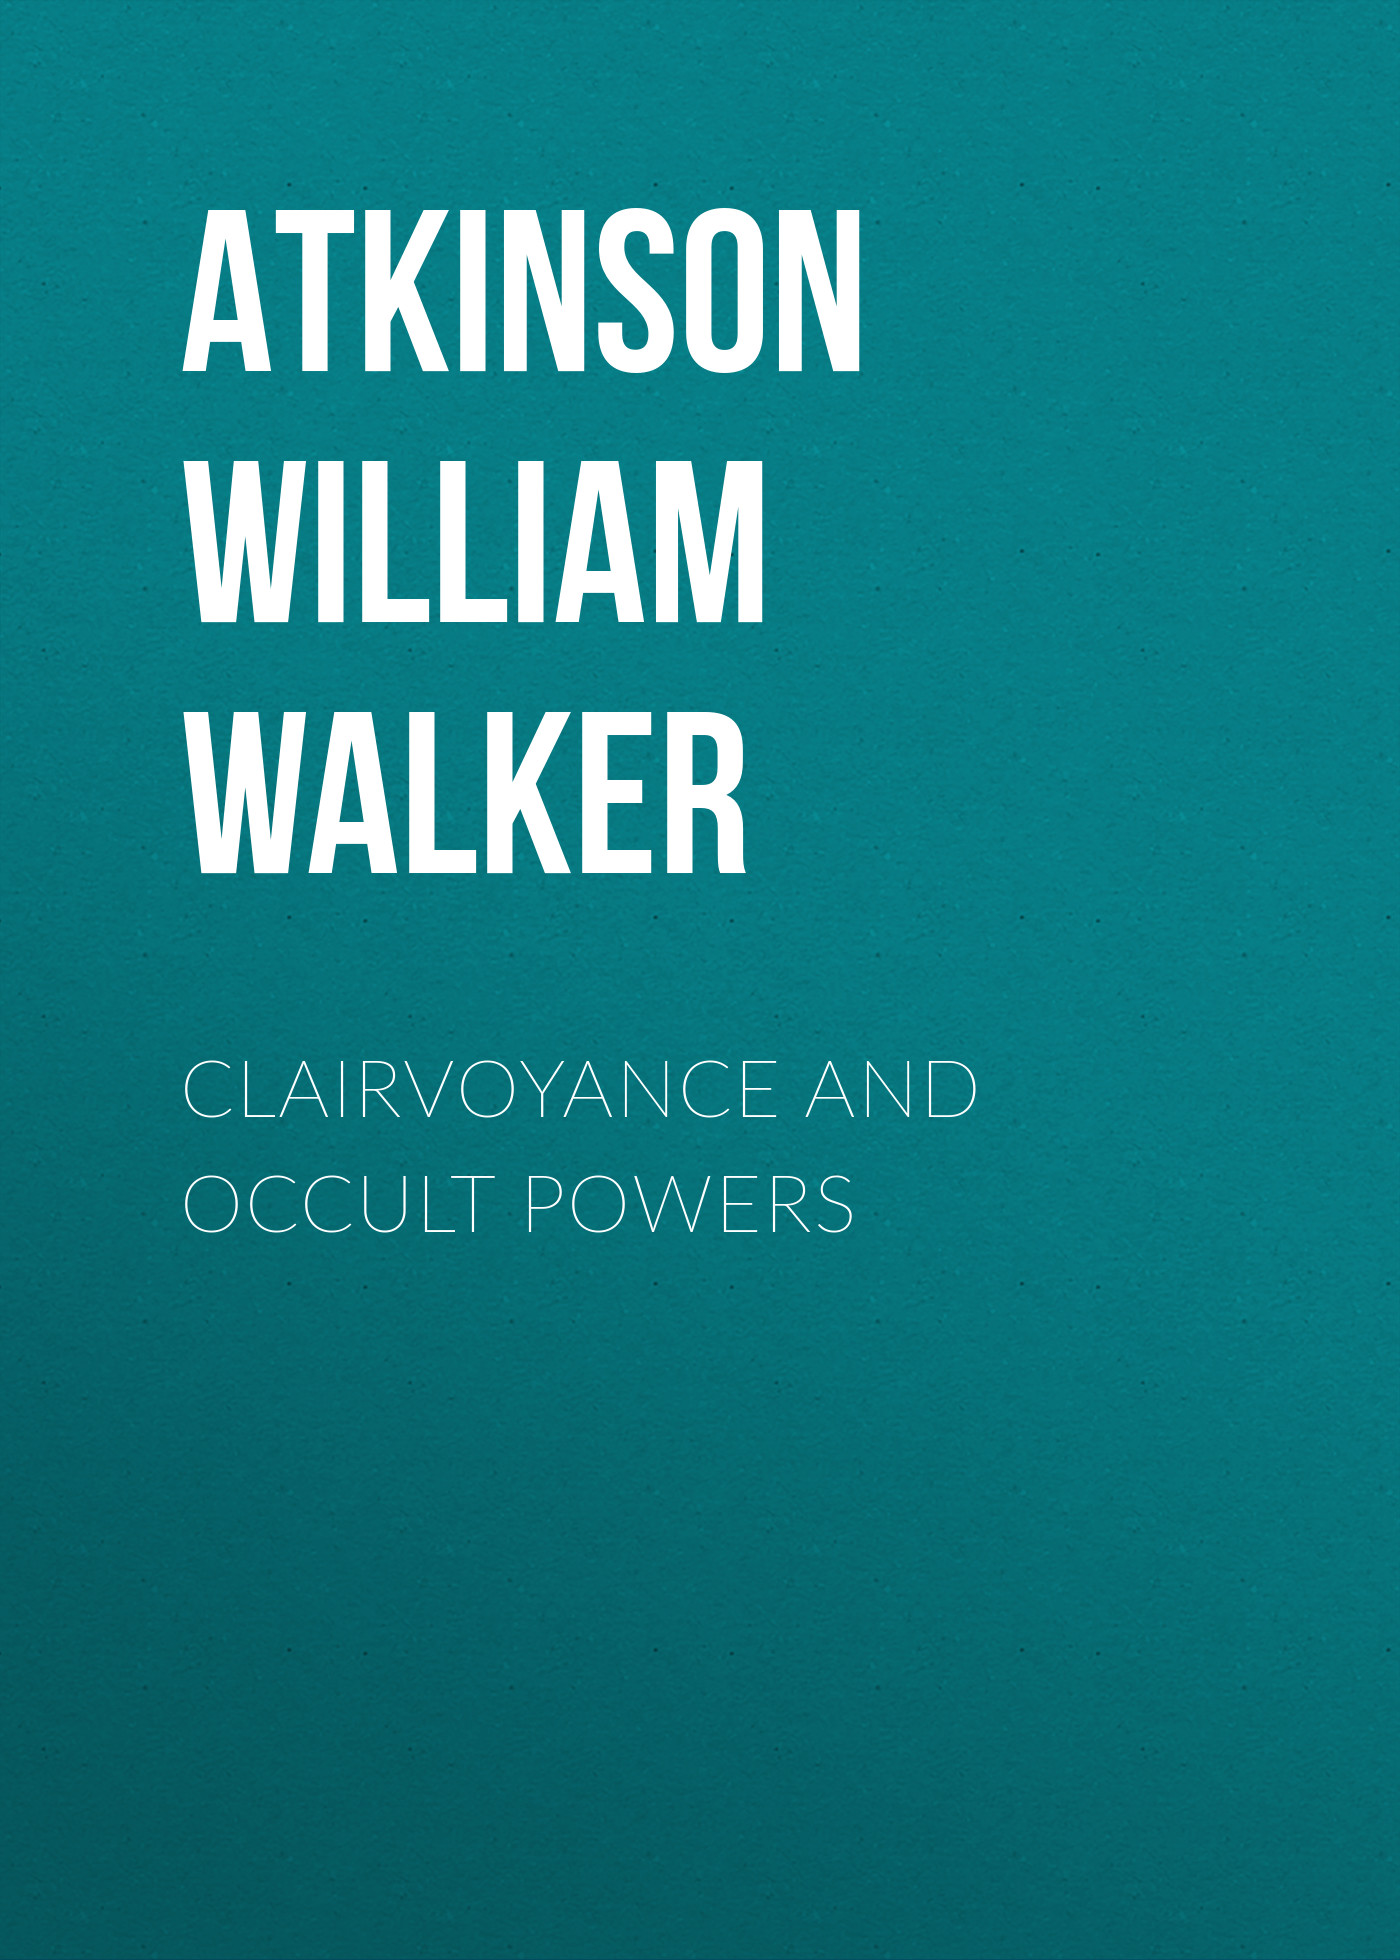 Atkinson William Walker Clairvoyance and Occult Powers shakespeare william rdr cd [lv 2] romeo and juliet